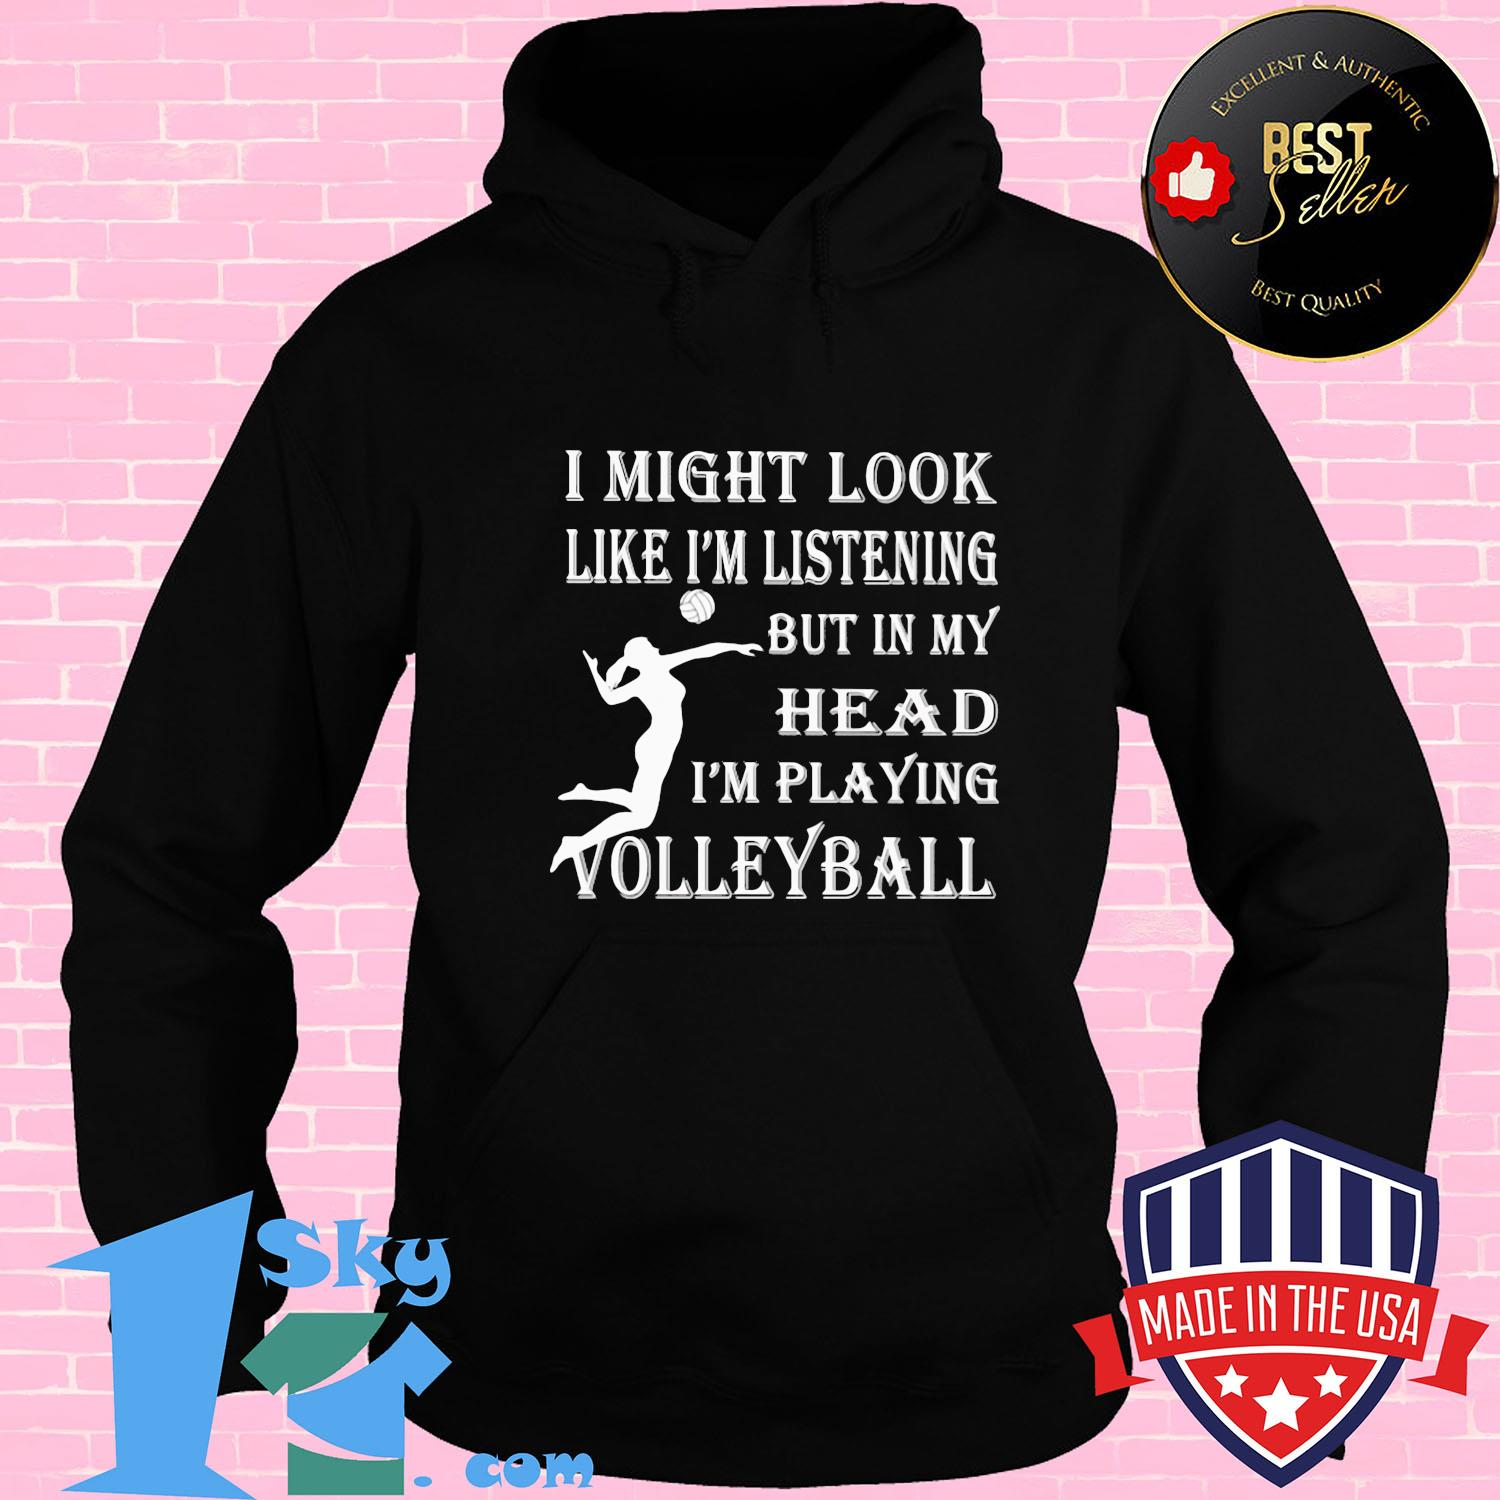 I might look like I'm listening but in my head I'm playing volleyball shirt